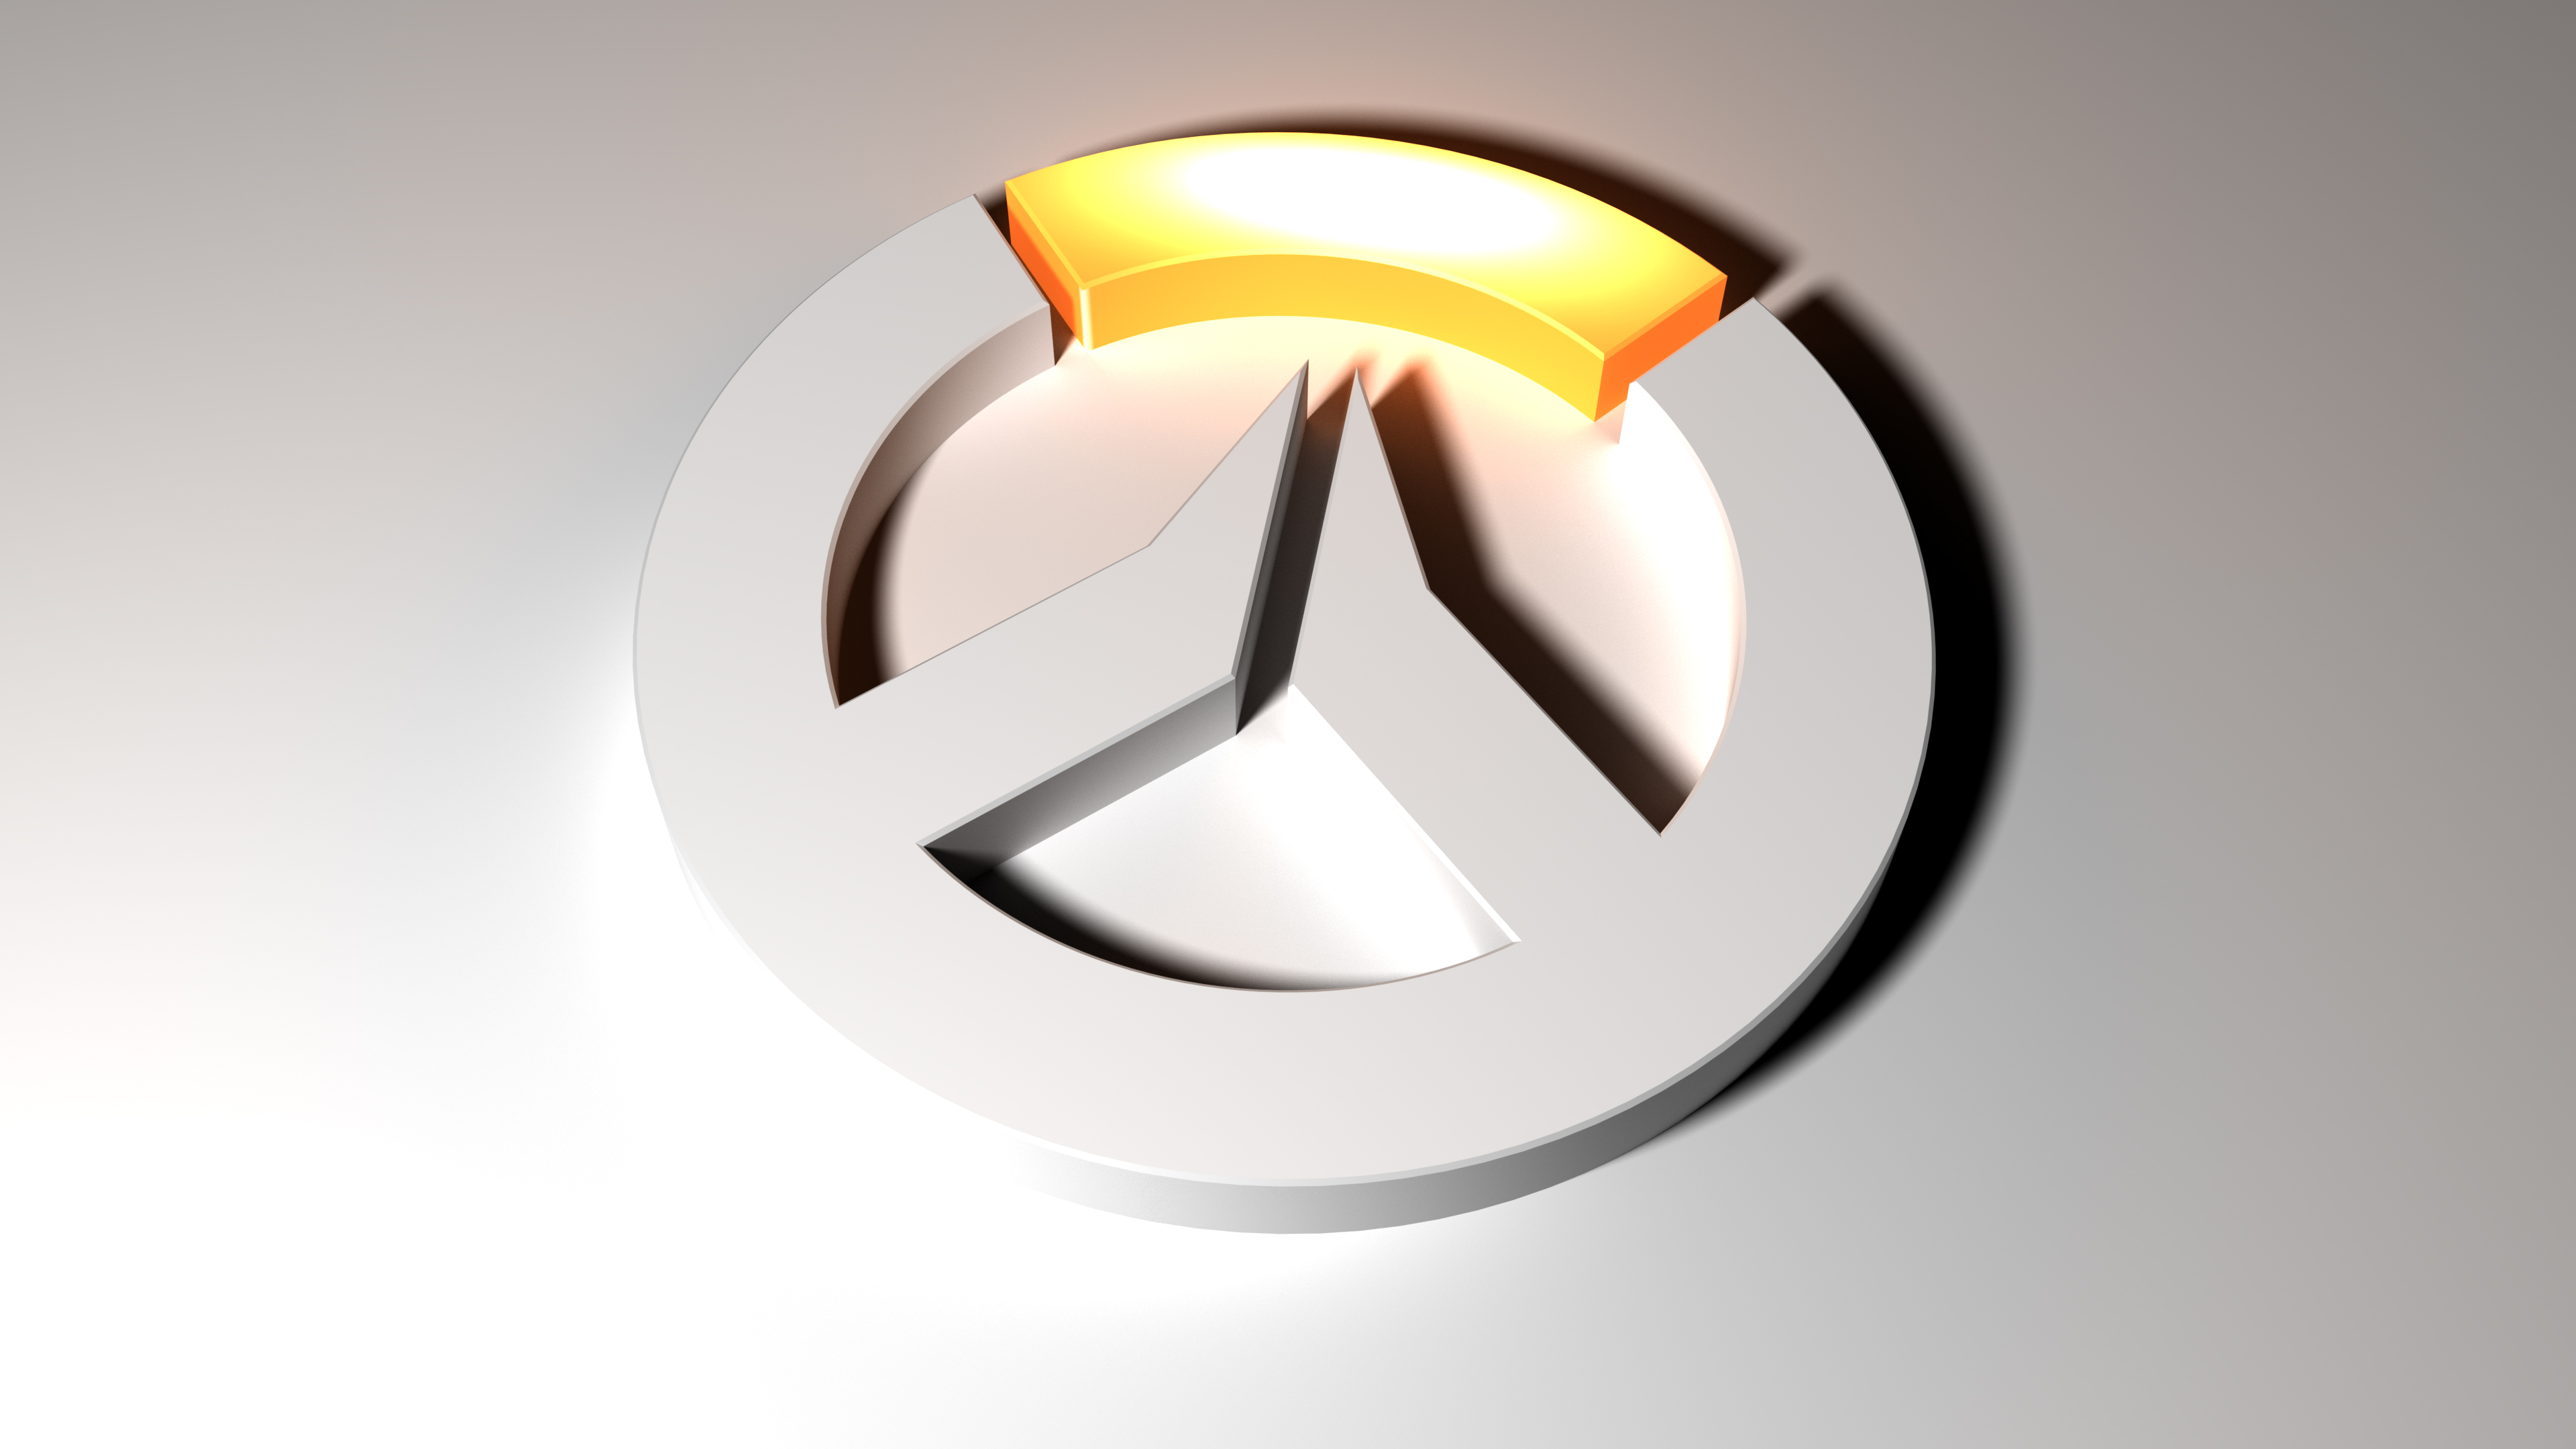 Overwatch Emblem Wallpaper